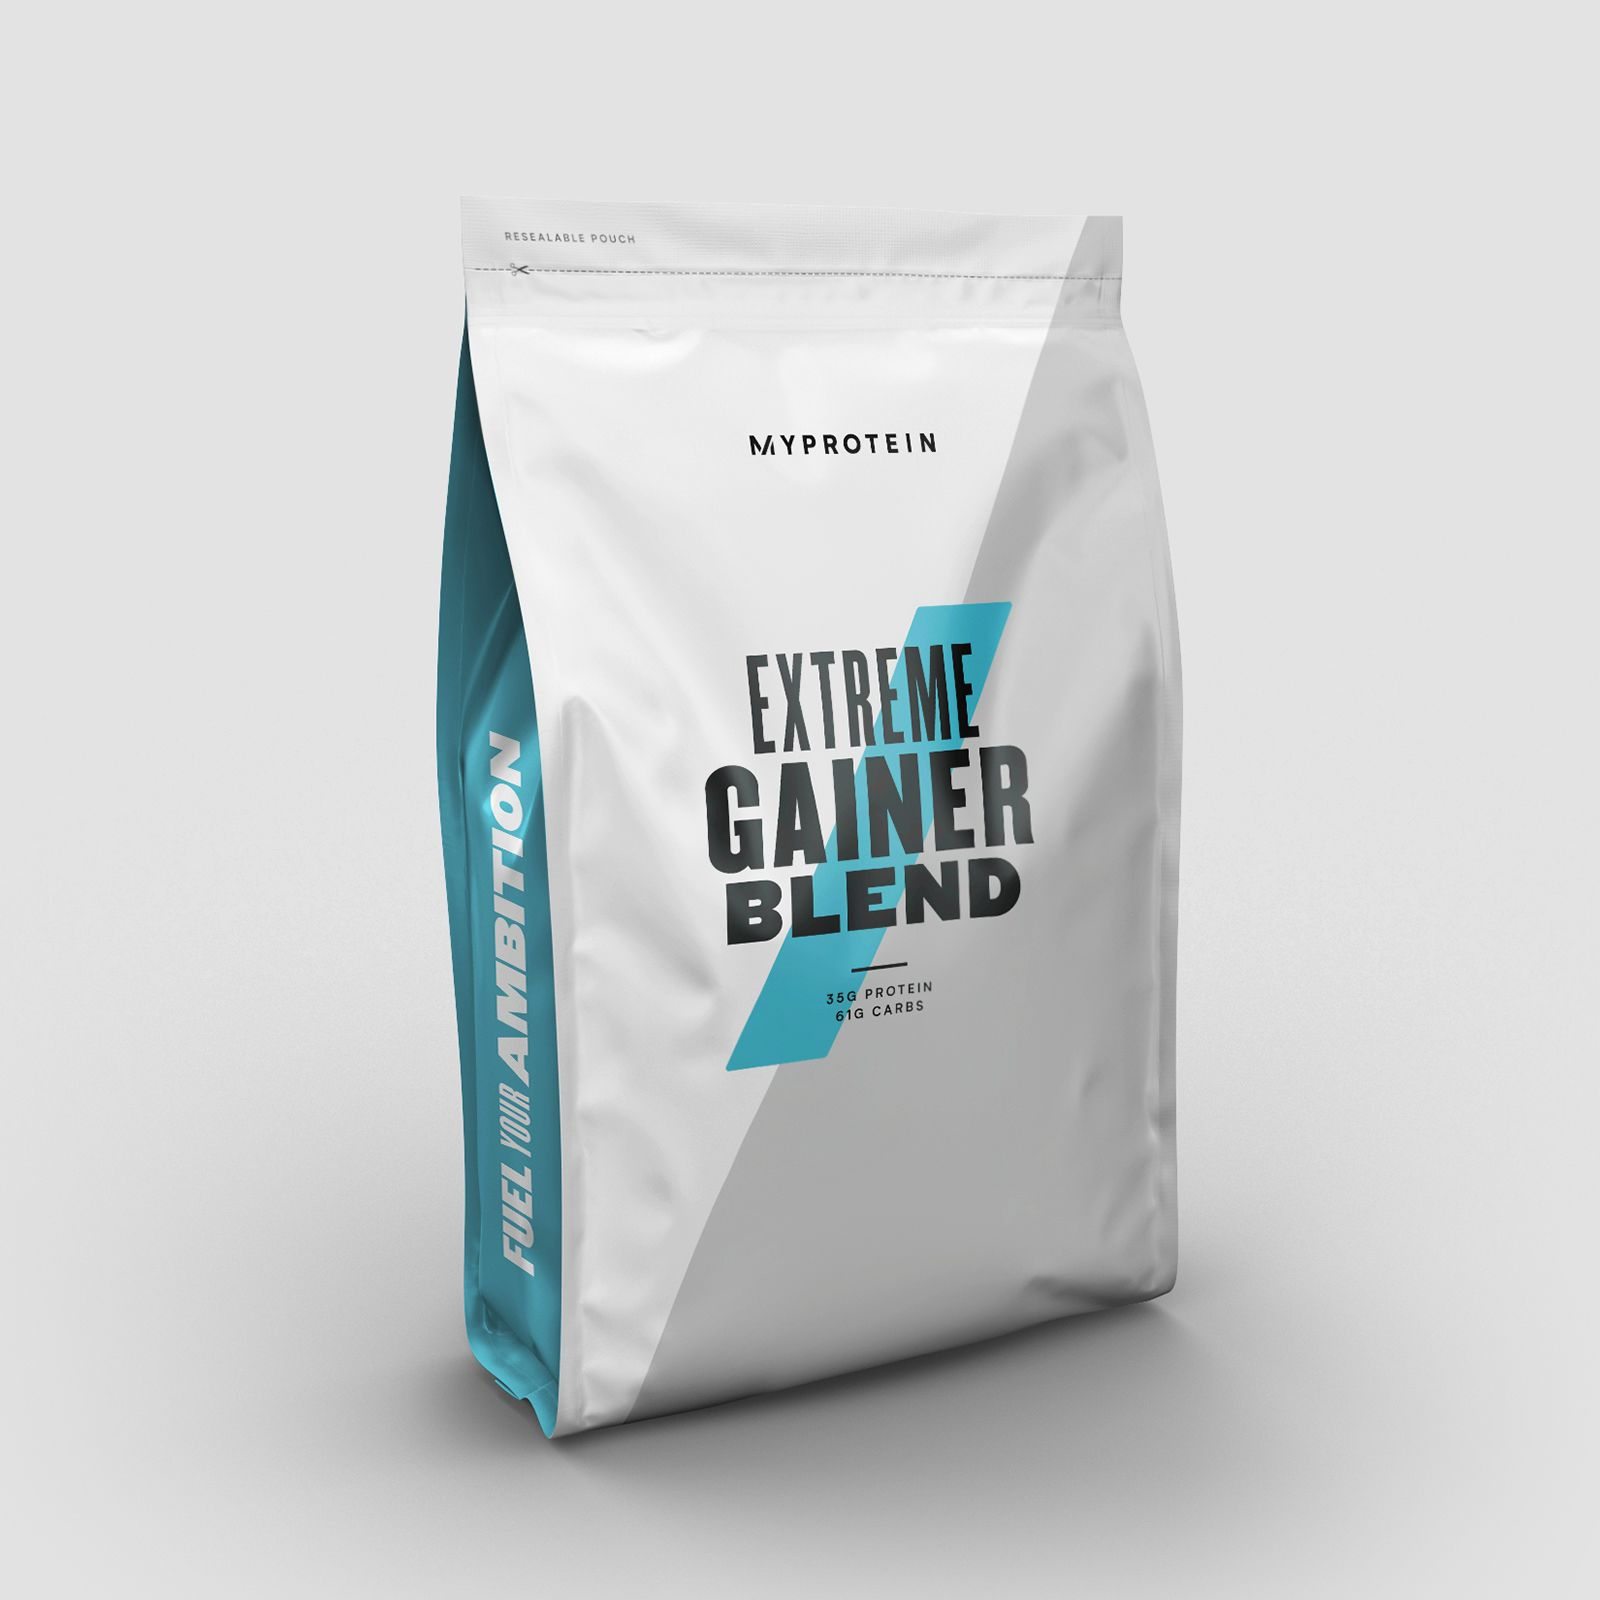 Extreme Gainer Blend - 5000g - Cookies & Cream